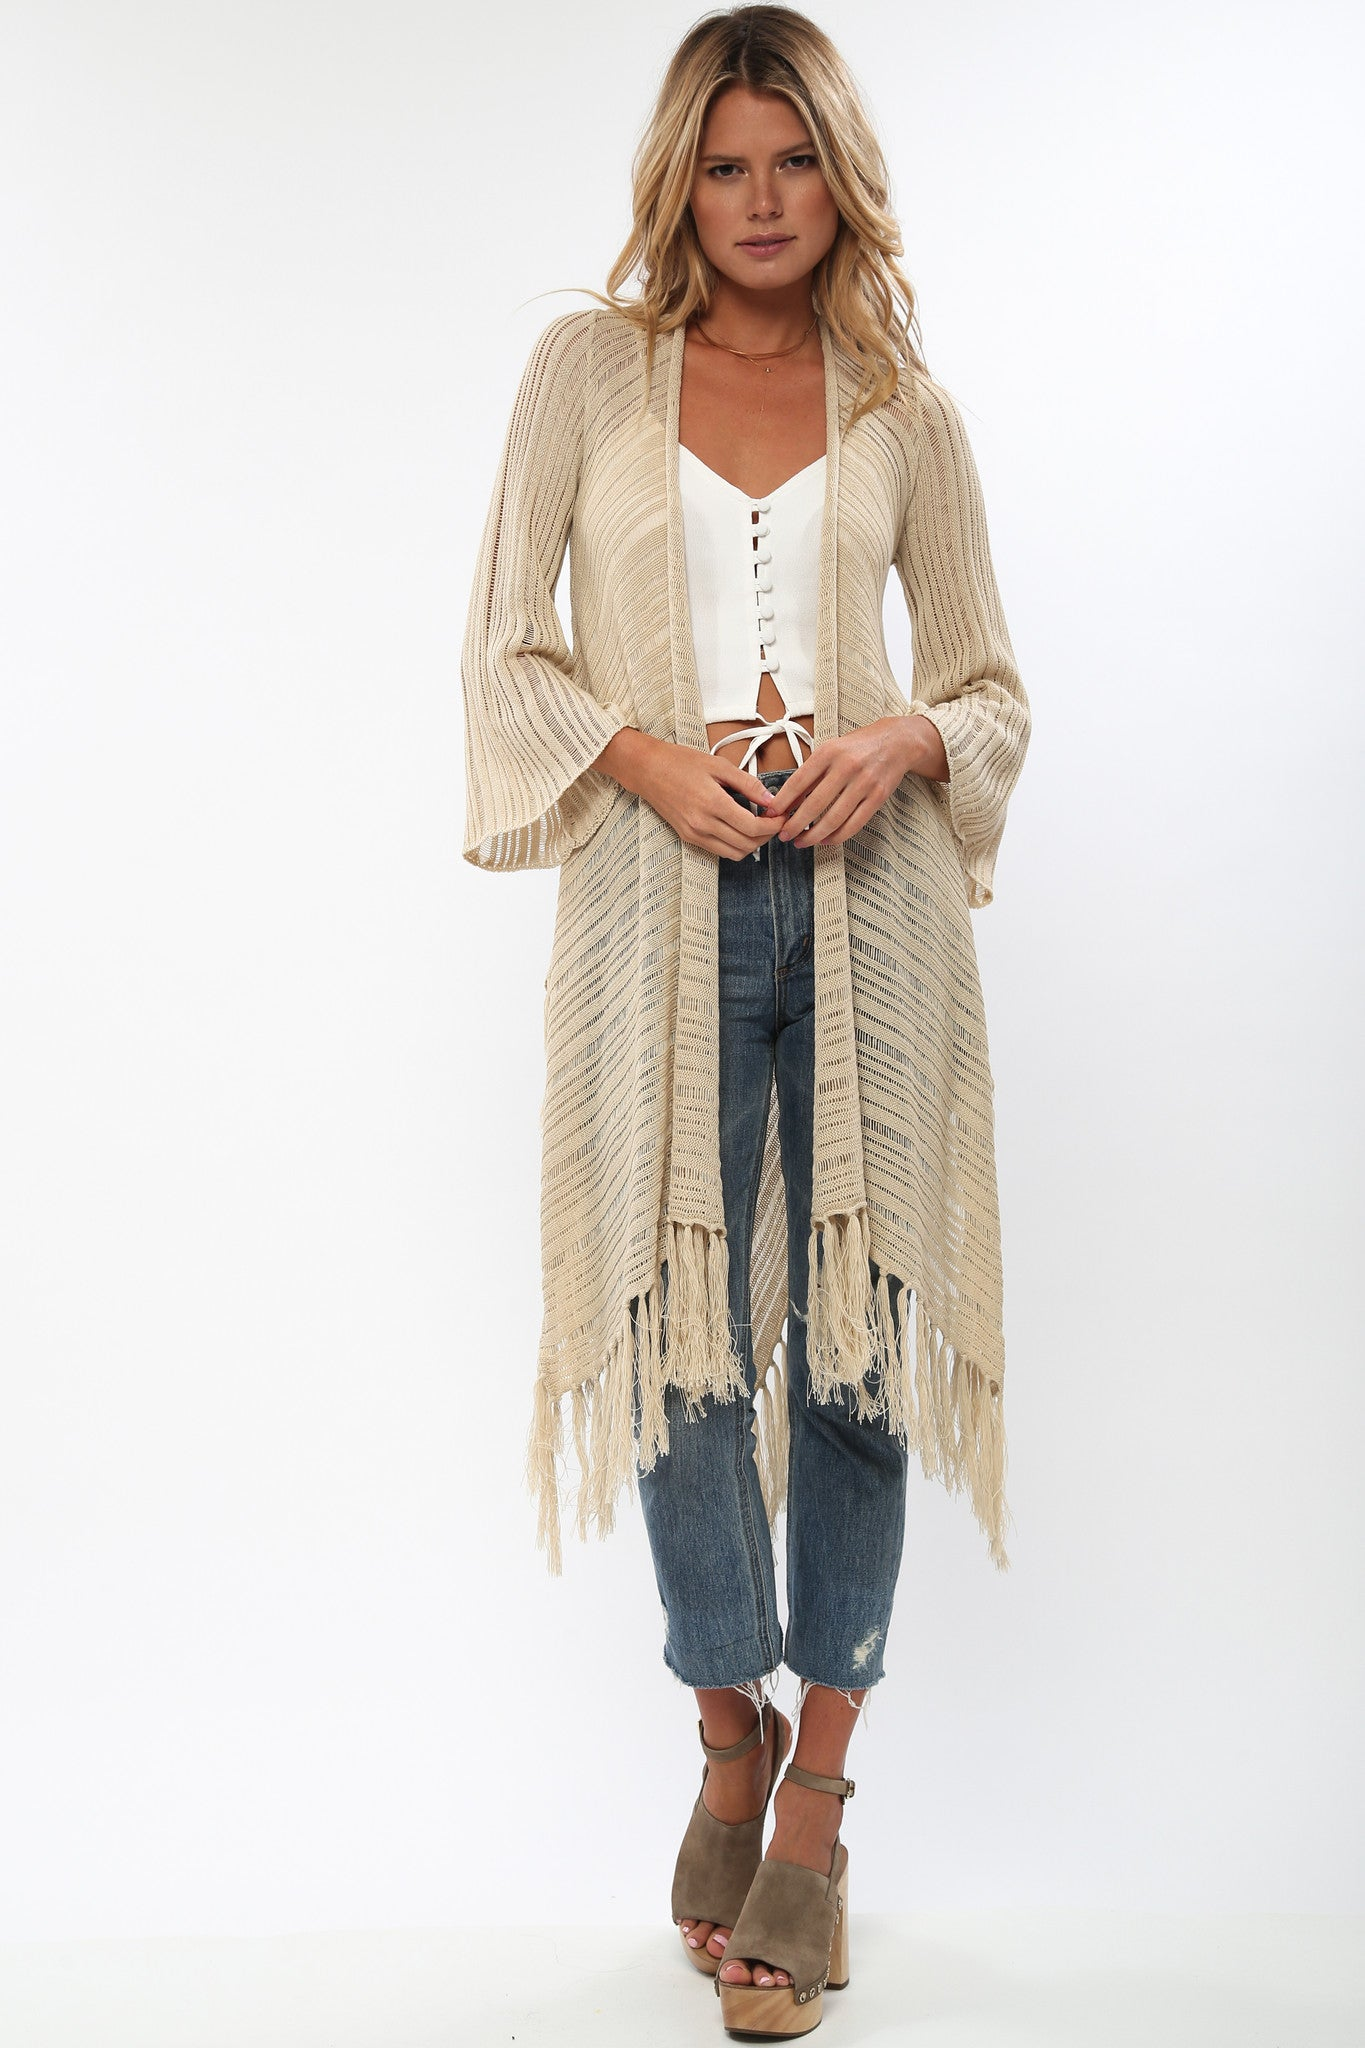 Heartbreaker Drape Sweater with Fringe in Biscotti